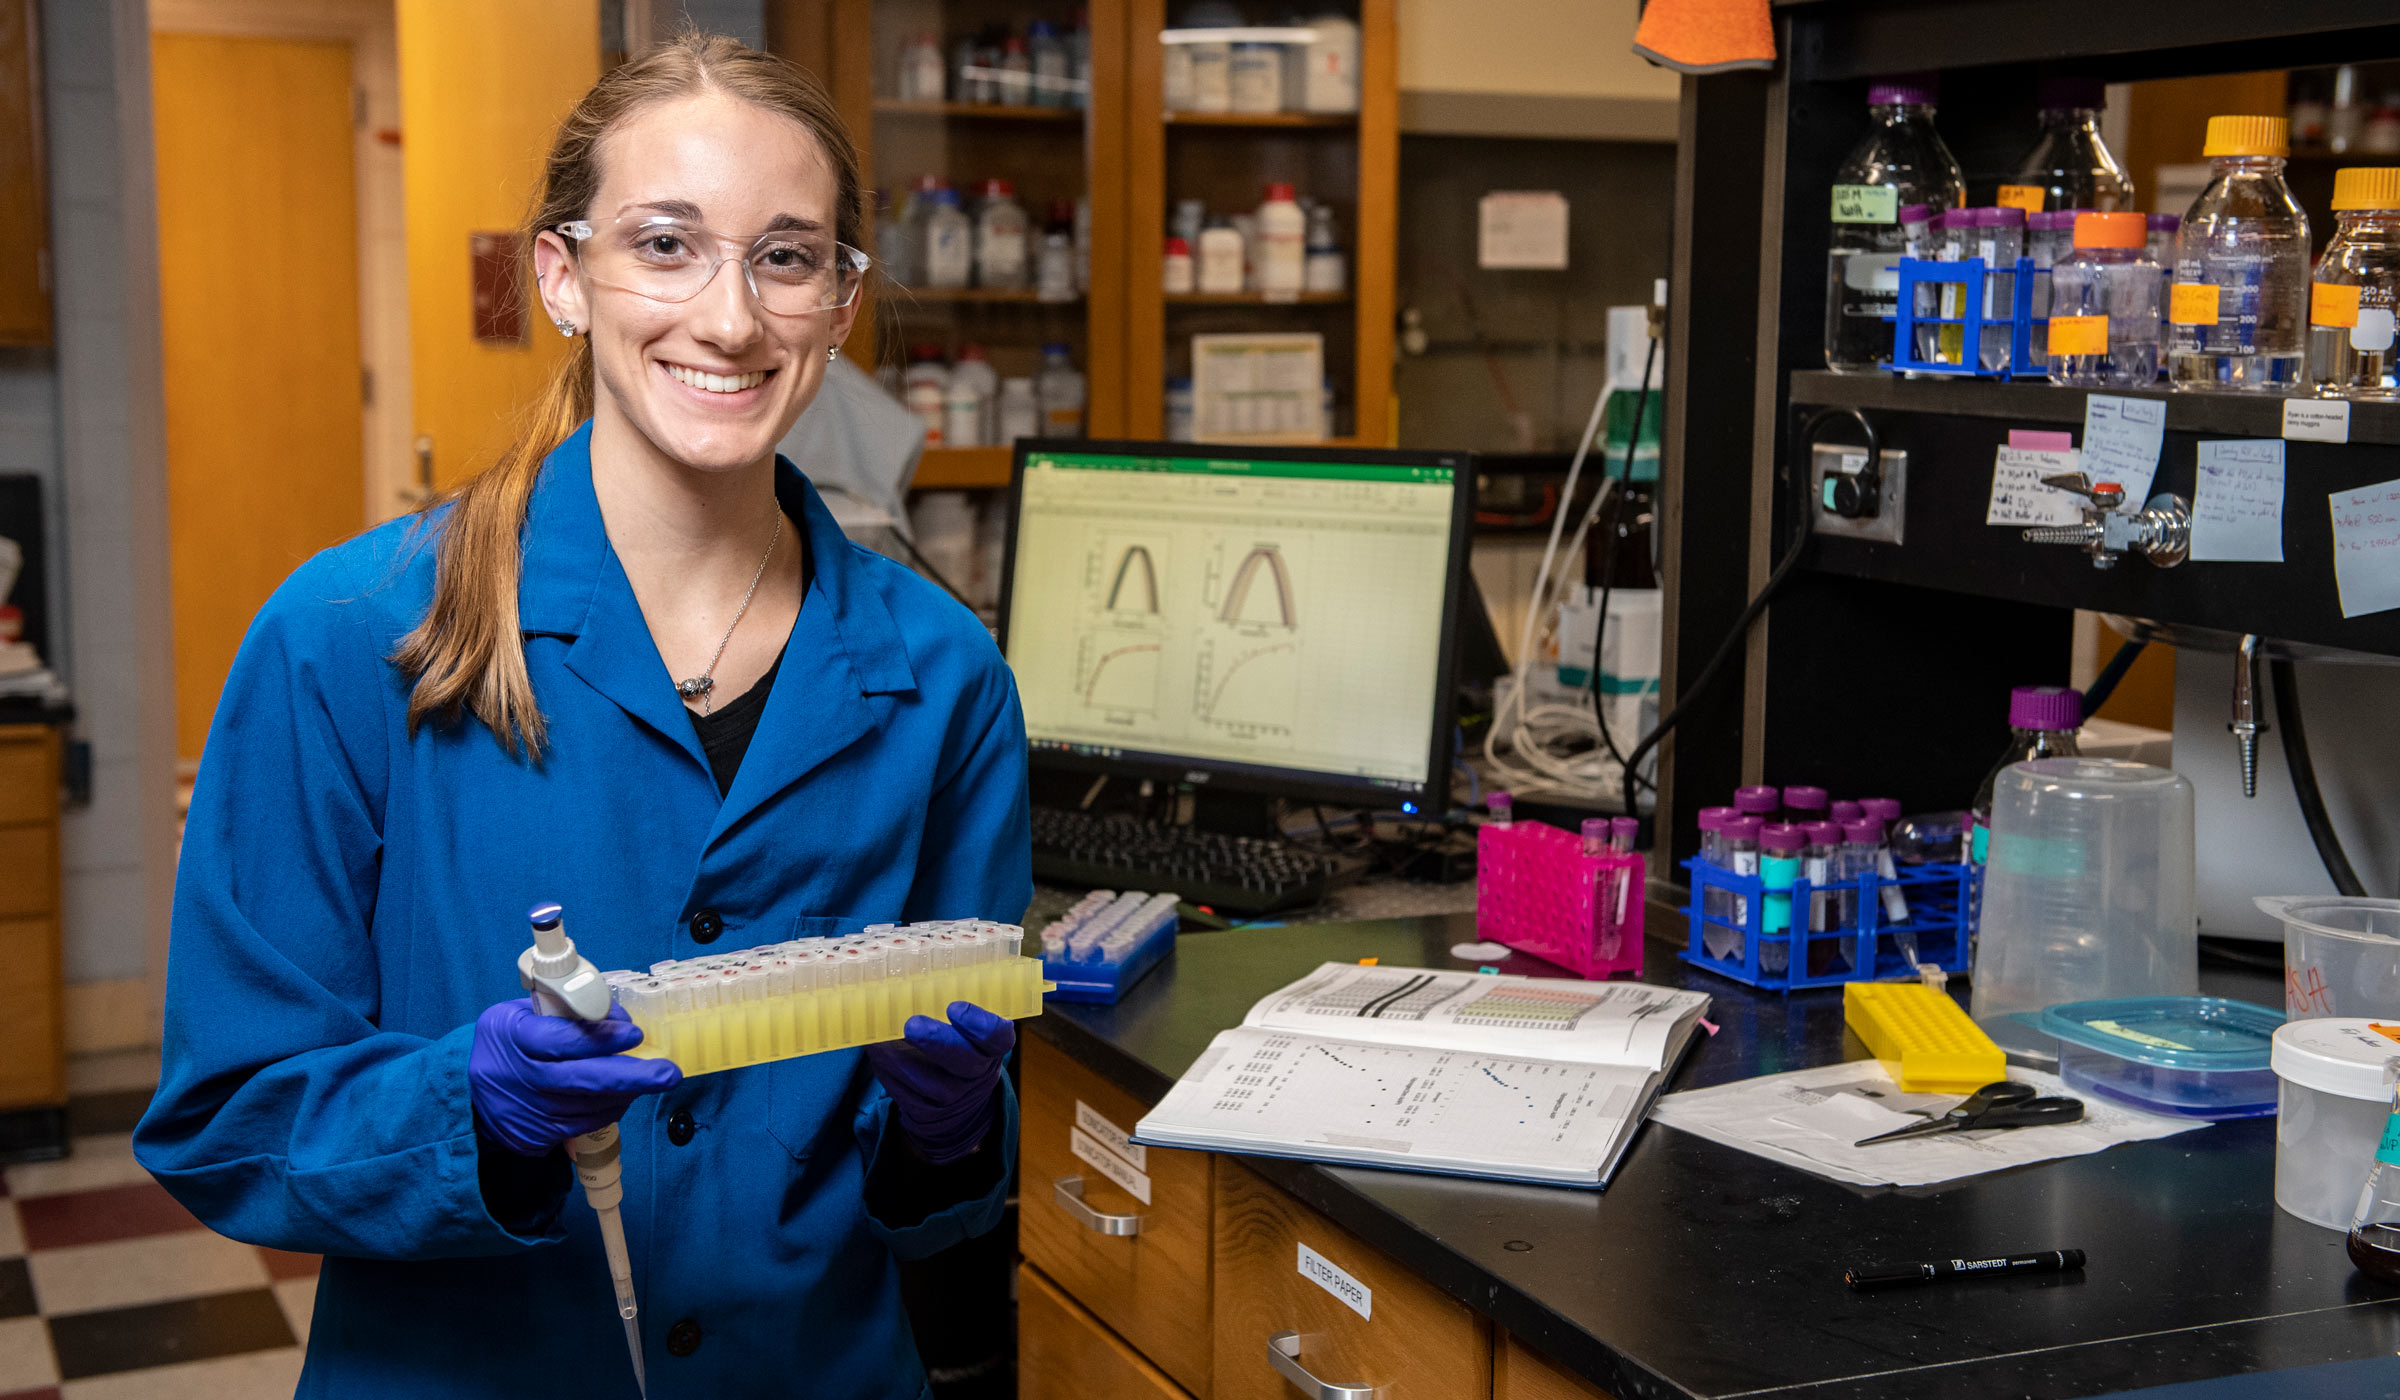 Emily Chappell, pictured in a research lab.